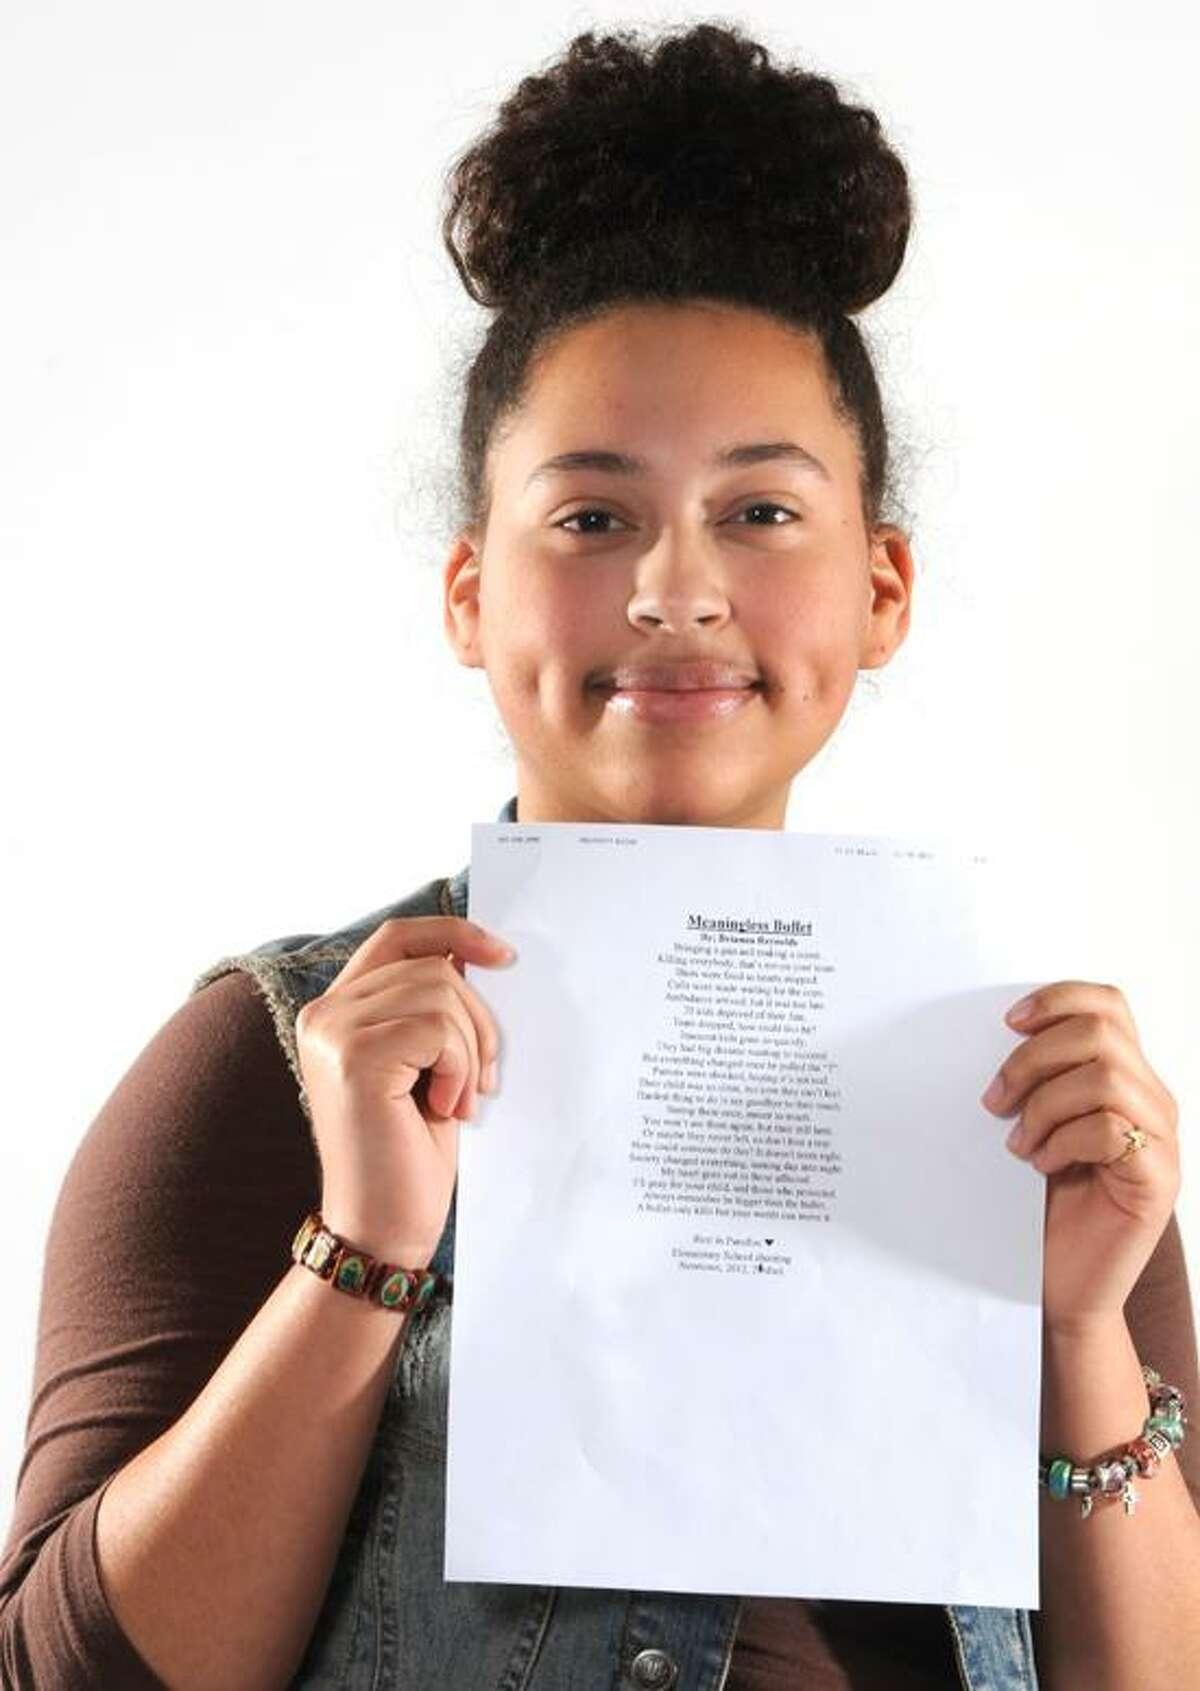 """Brianna Reynolds, 14, of West Haven wrote the poem """"Meaningless Bullet"""" about the sadness and meaningless slaughter at the Sandy Hook Elementary School Friday, December 15, 2012. Studio: Friday, December 21, 2012. Photo by Peter Hvizdak / New Haven Register."""